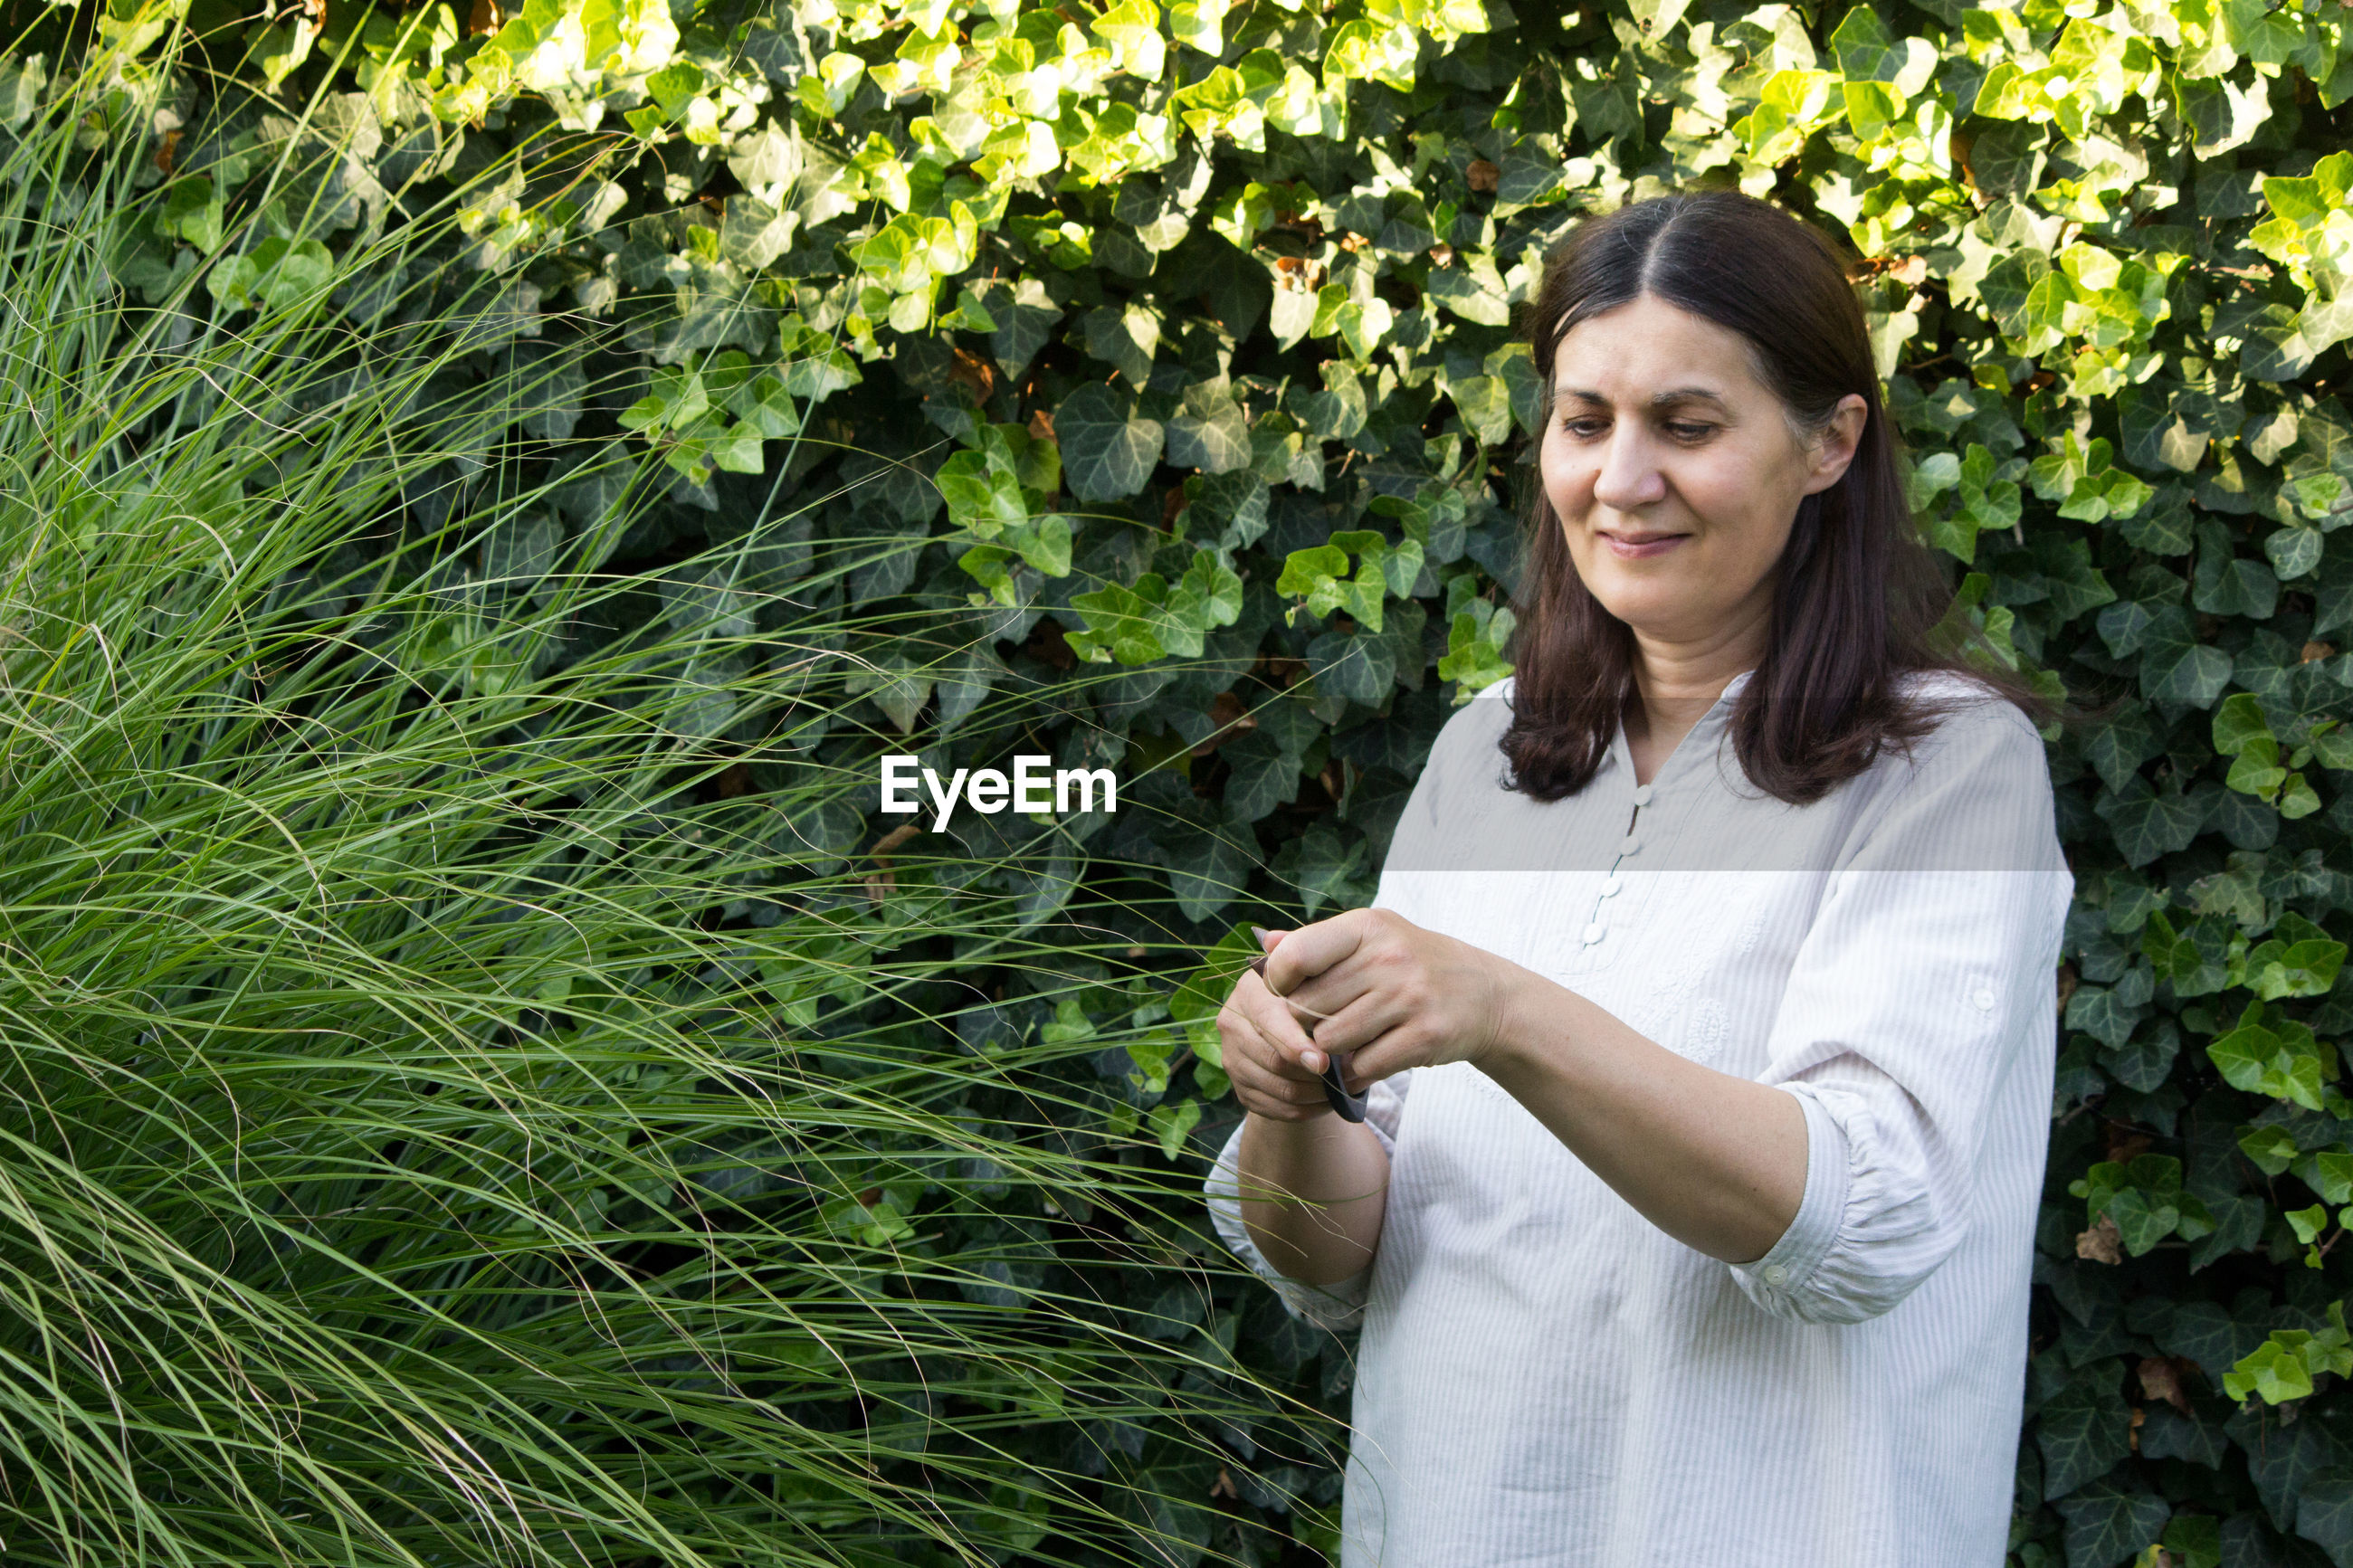 Smiling woman cutting while standing by plants